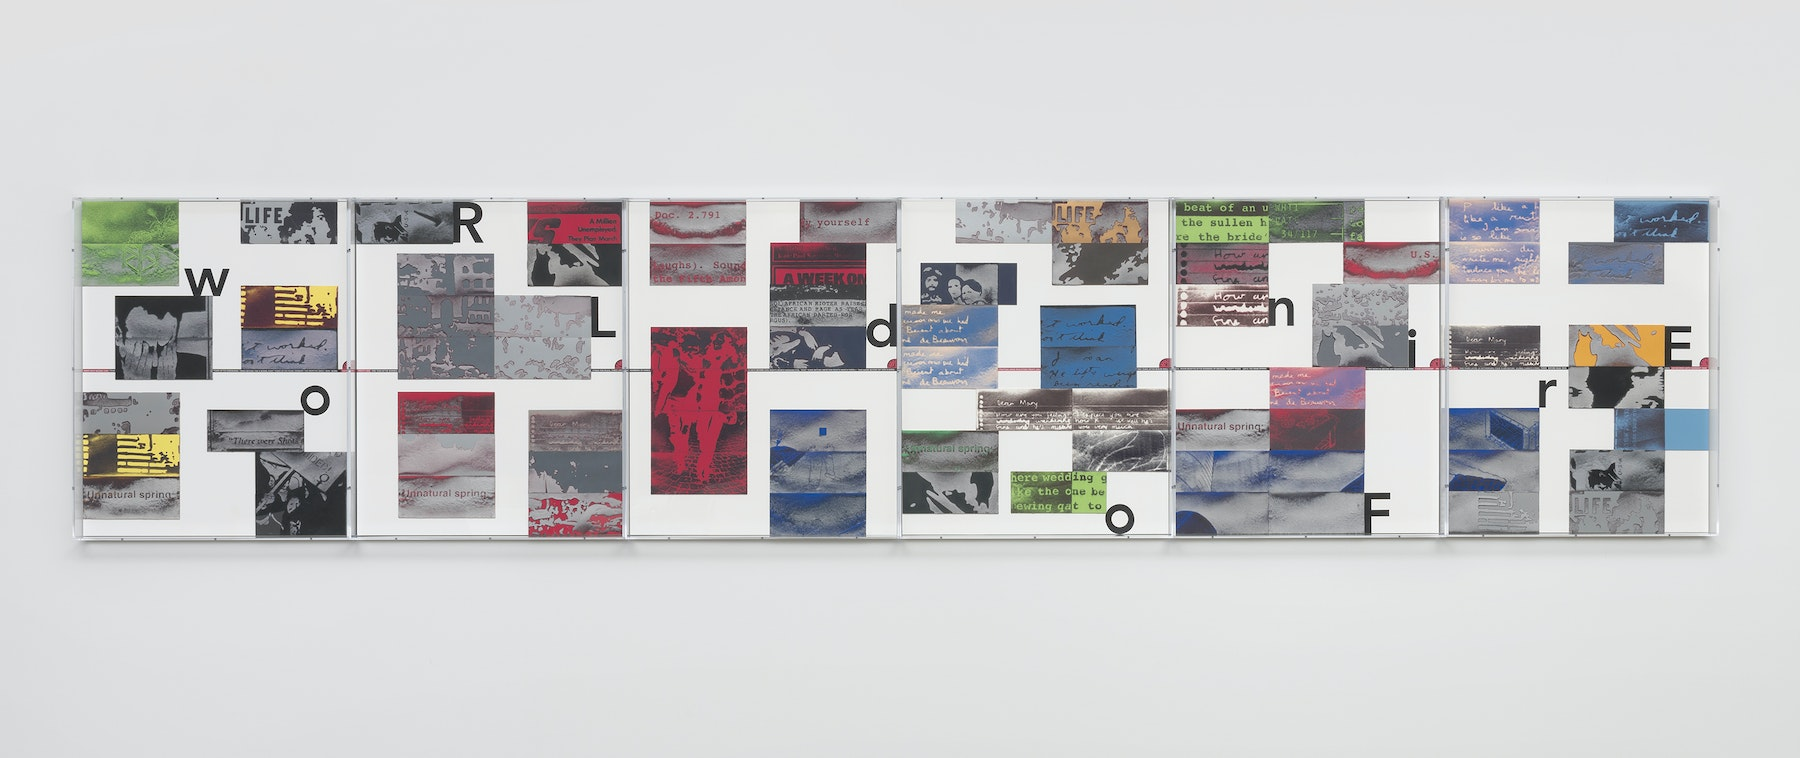 """Mary Kelly """"World on Fire Timeline,"""" 2020 Compressed lint, archival mount board, paper, ink, acrylic box frames 6 units, 32 x 40 x 3 1/4 inches each, 16 feet overall Inventory #KEL164 Photo credit: Robert Wedemeyer"""